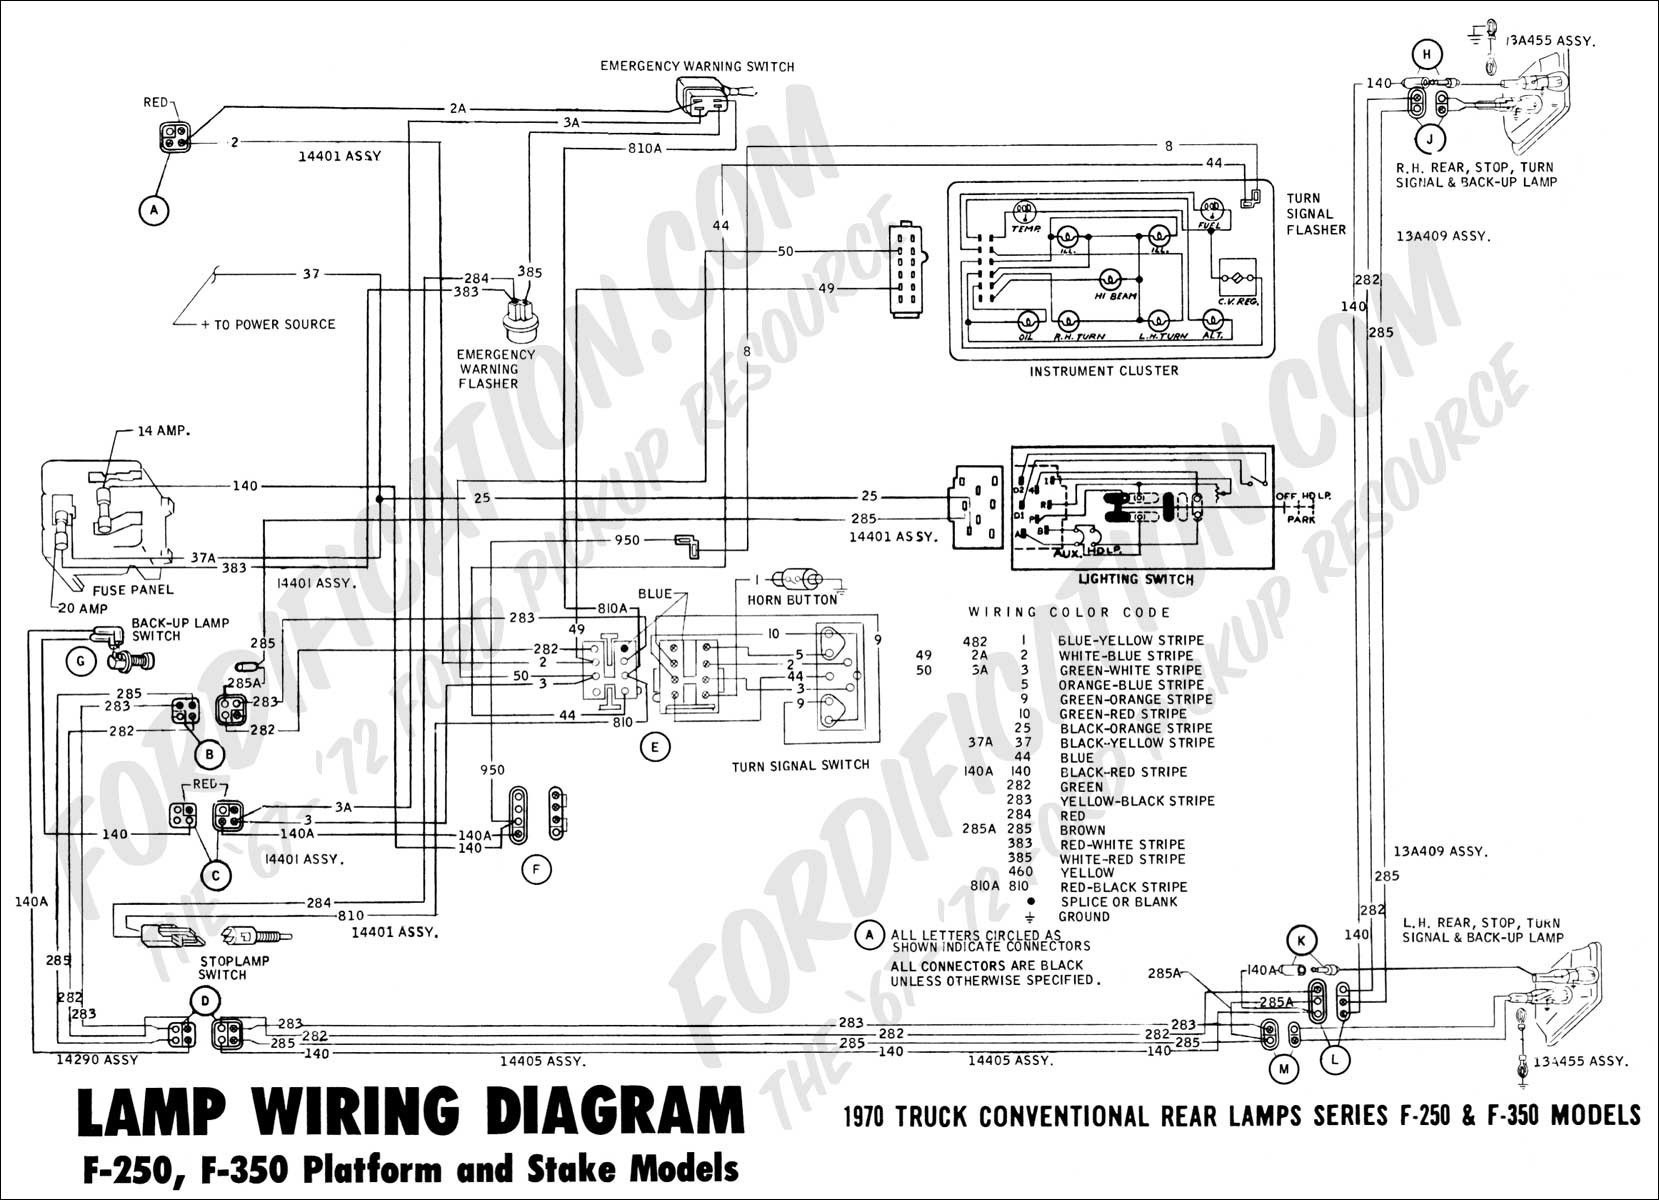 1946 Dodge Wiring Diagram Great Design Of Ram Schematic Further 1973 Ford F 250 On 1952 Packard 2011 4x4 Schematics